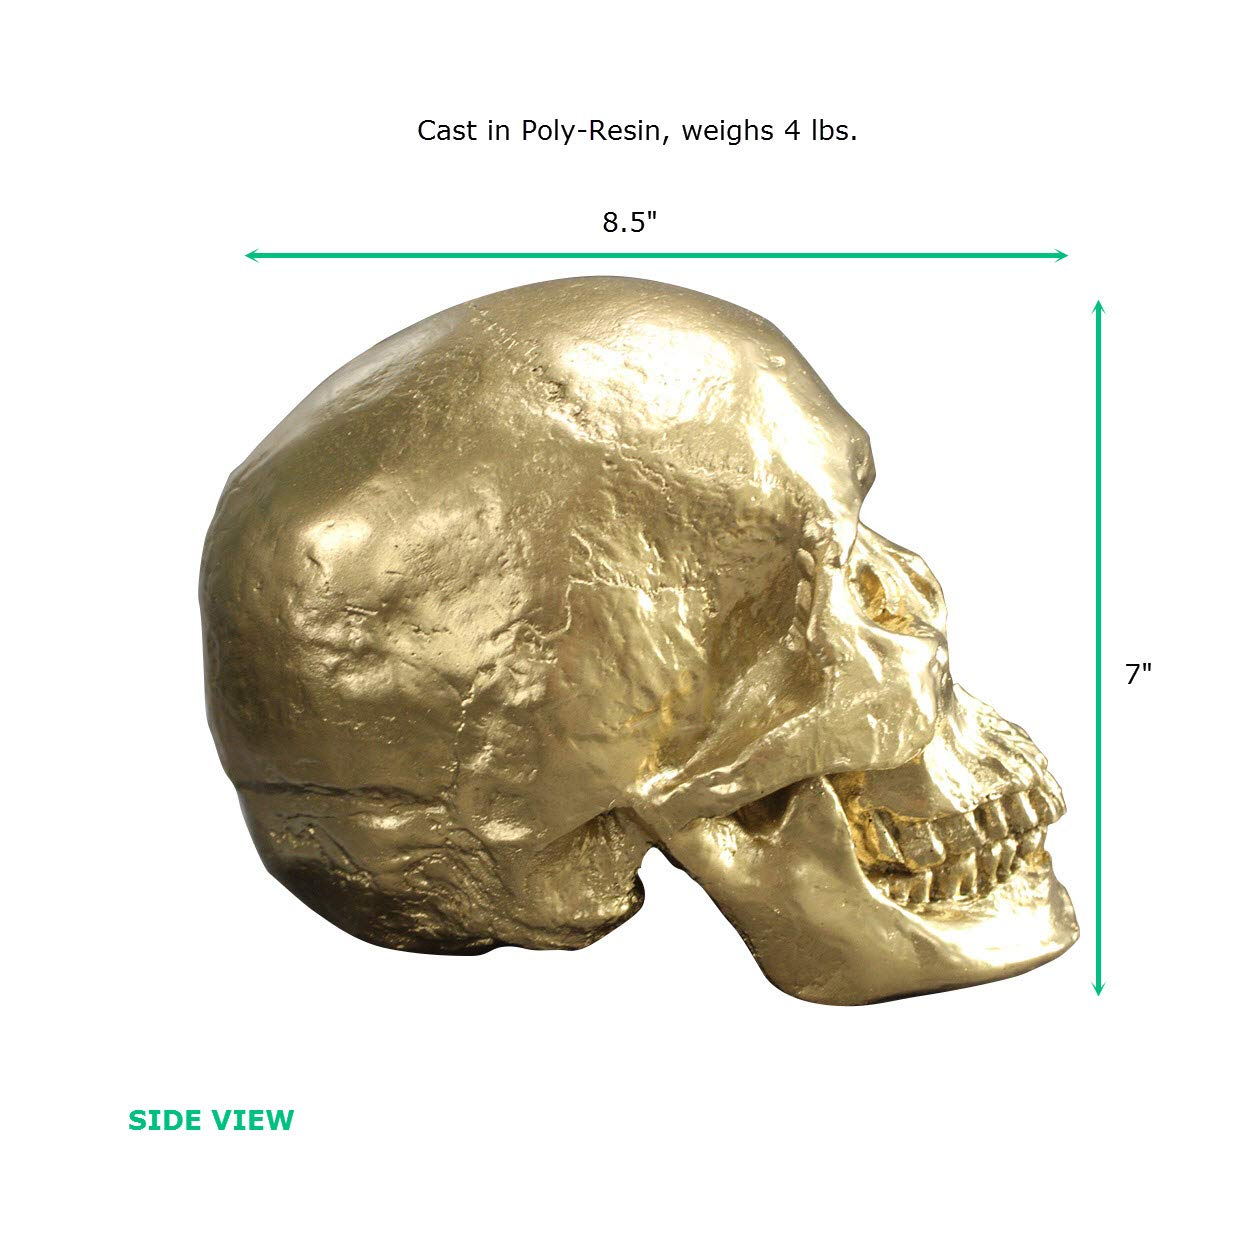 Wall Charmers Life Size Human Skull - 8.5'' Gold Faux Human Anatomy - Table Top Skeleton Head Home Decor by Wall Charmers (Image #4)